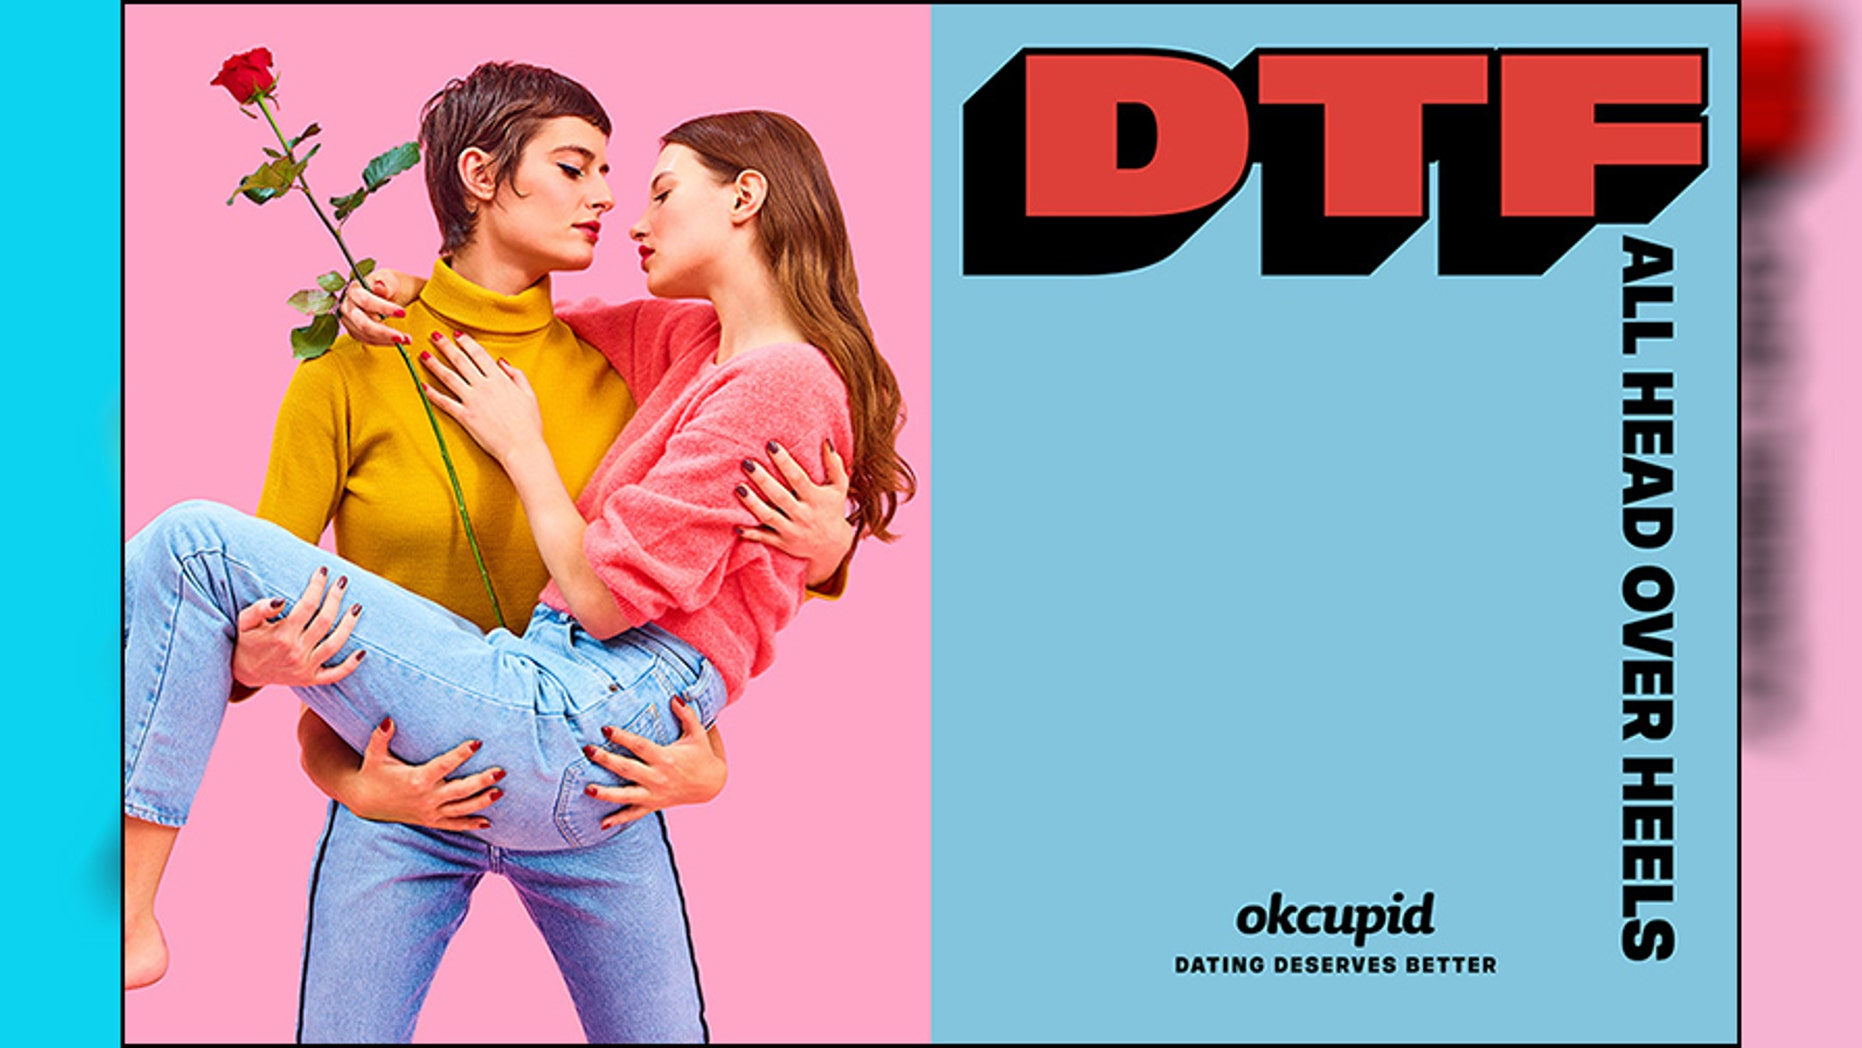 """OkCupid's new """"DTF"""" ad campaign has drawn criticism from a conservative group who wants it taken down."""